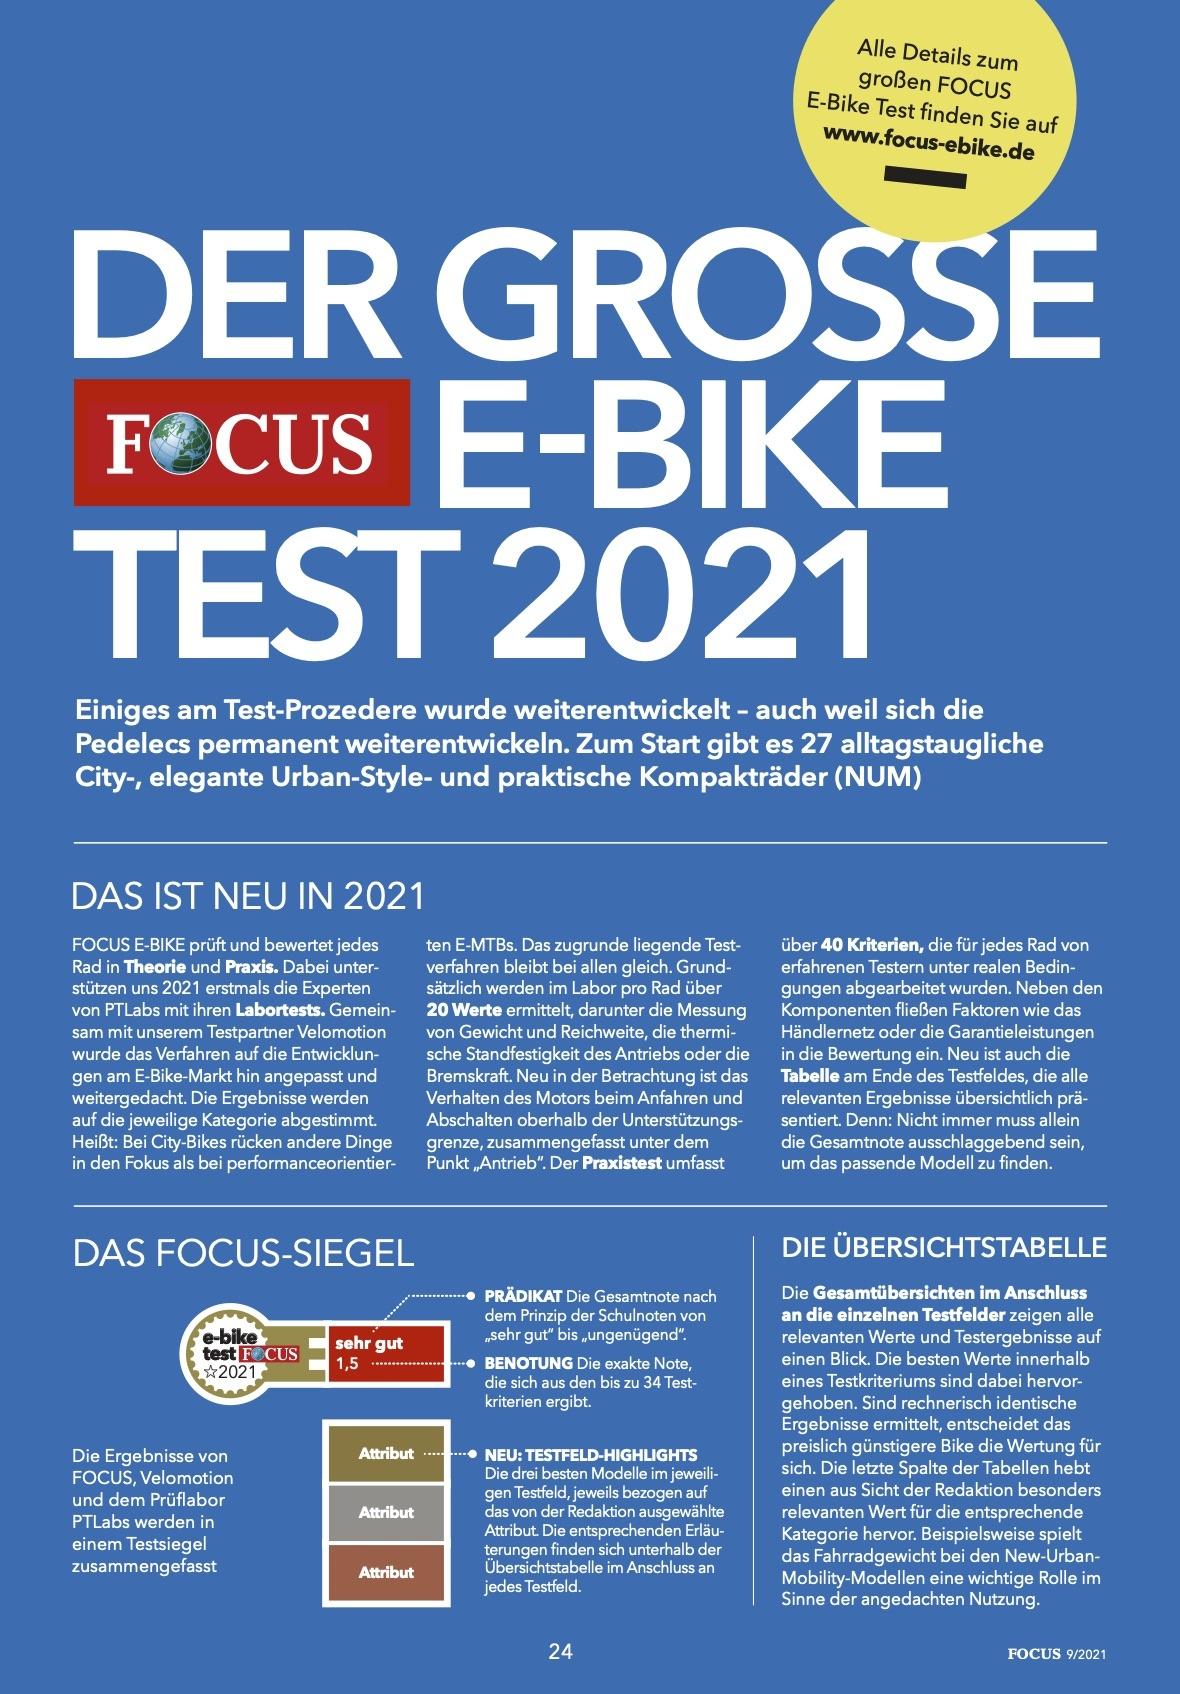 FOCUS E-BIKE 01/2021